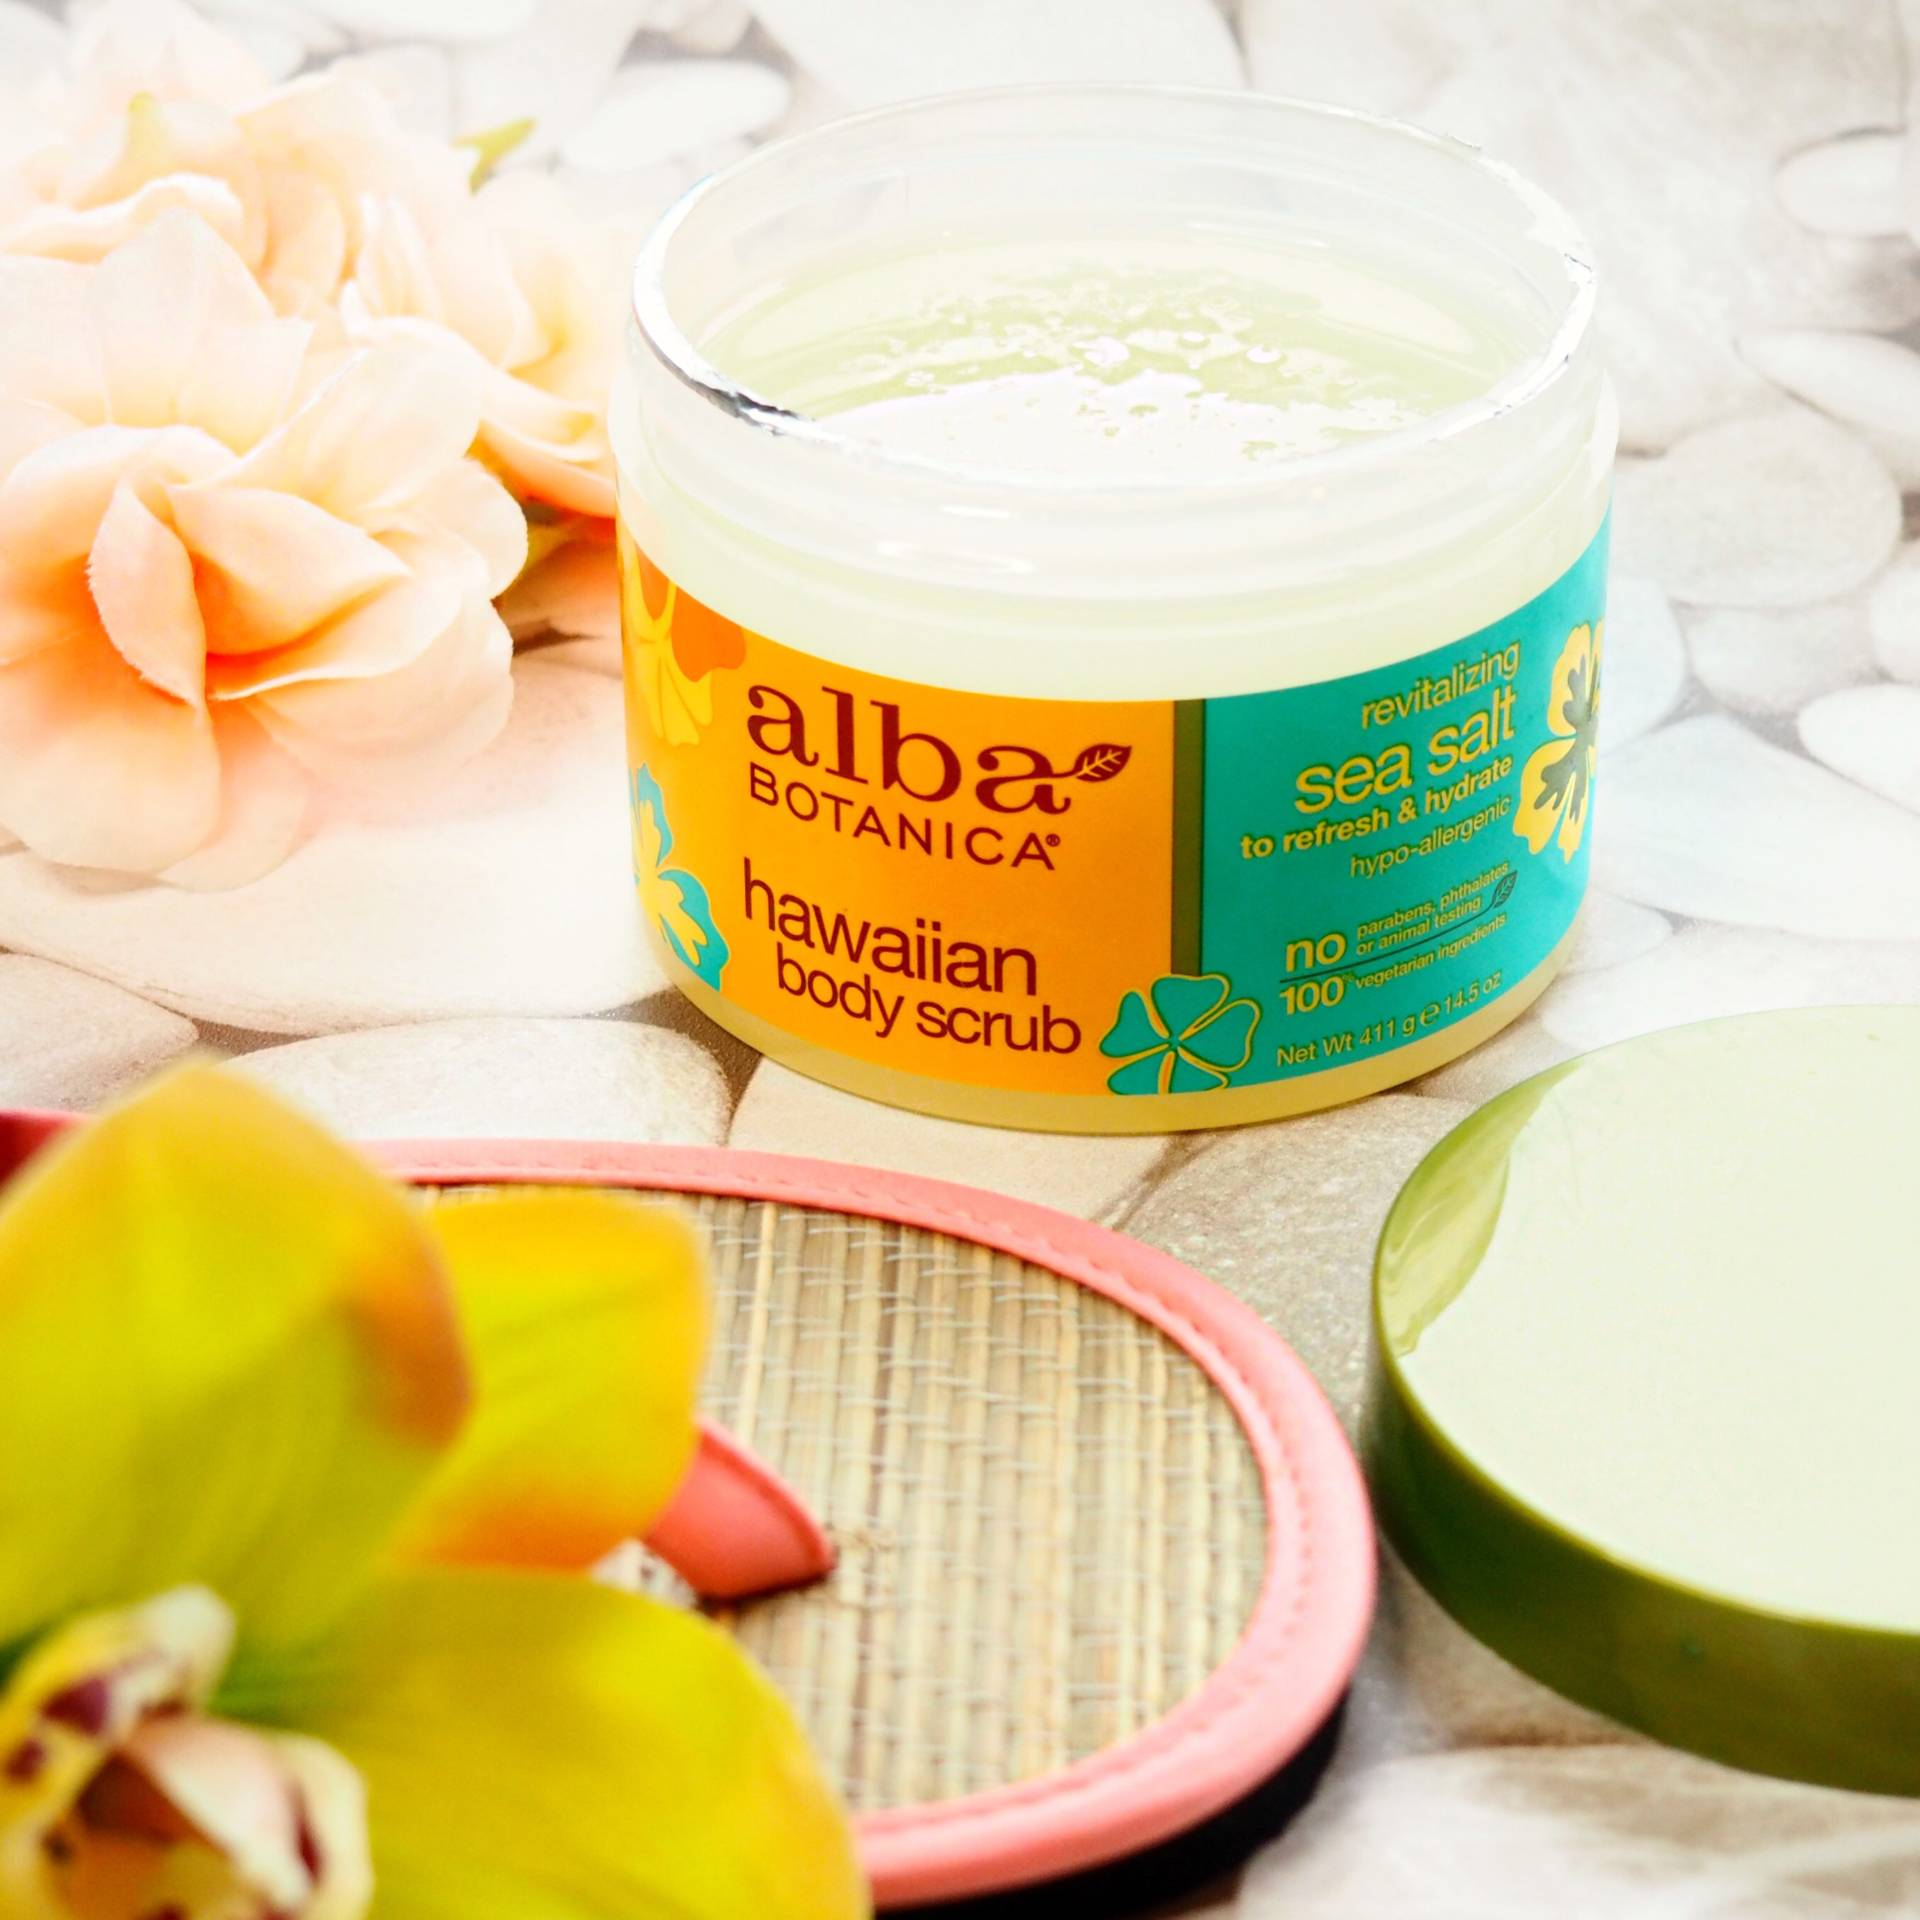 Alba Botanica Hawaiian Body Scrub